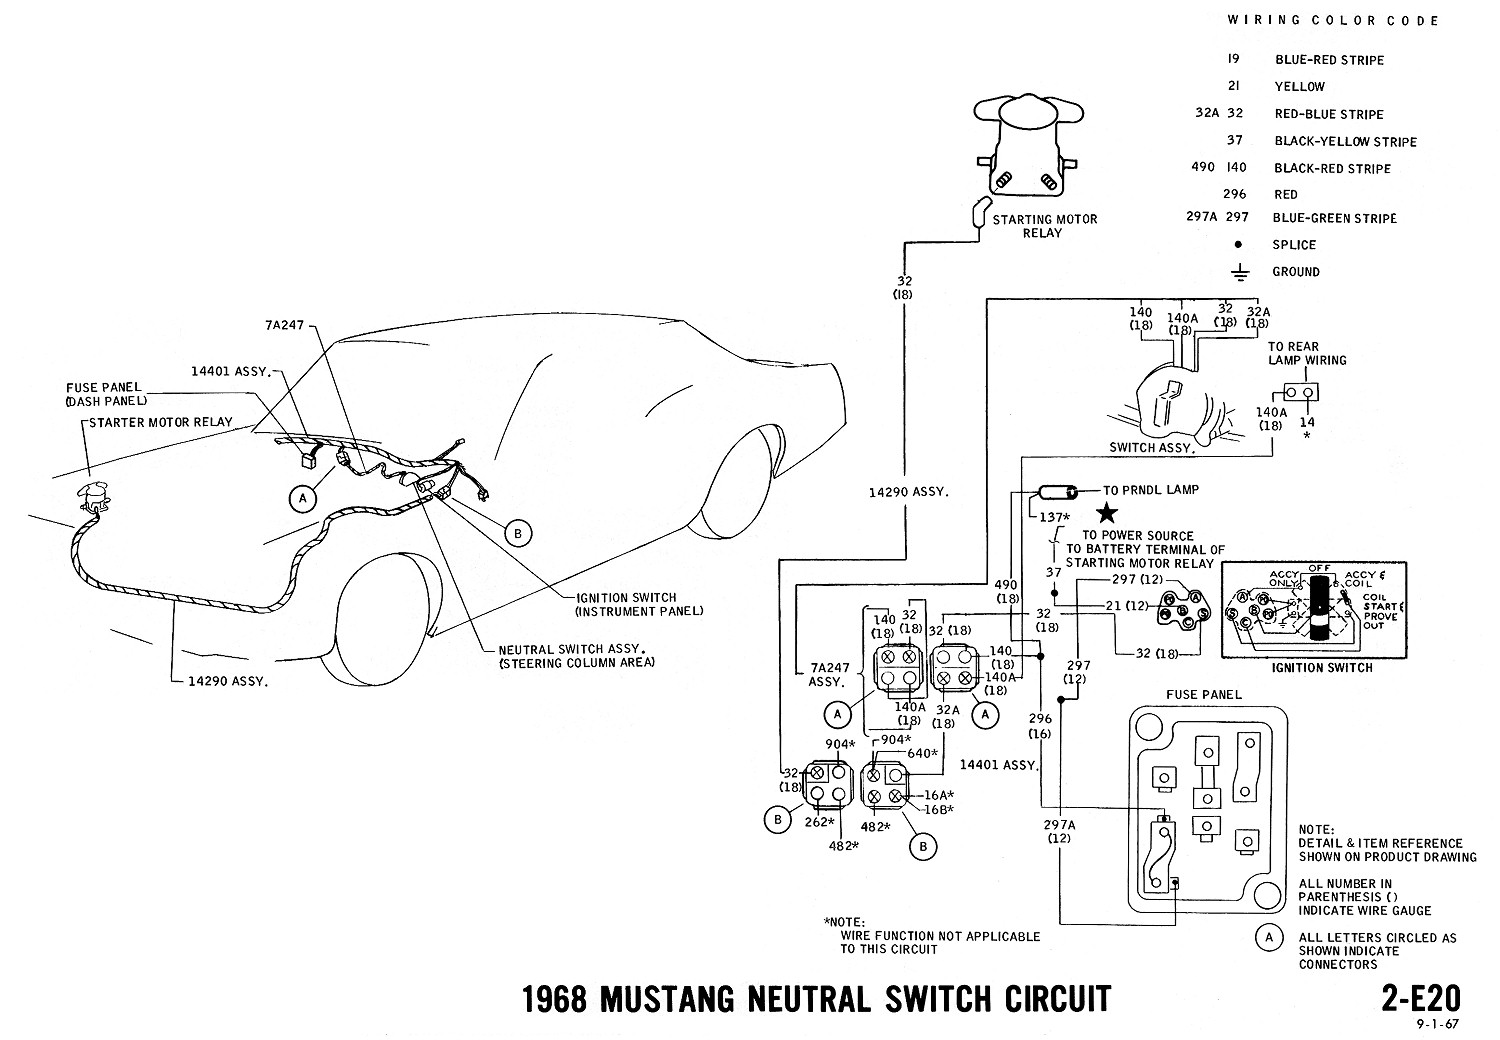 hight resolution of 1968 mustang wiring diagrams evolving software 1961 thunderbird wiring diagram 1968 master wiring diagram neutral switch